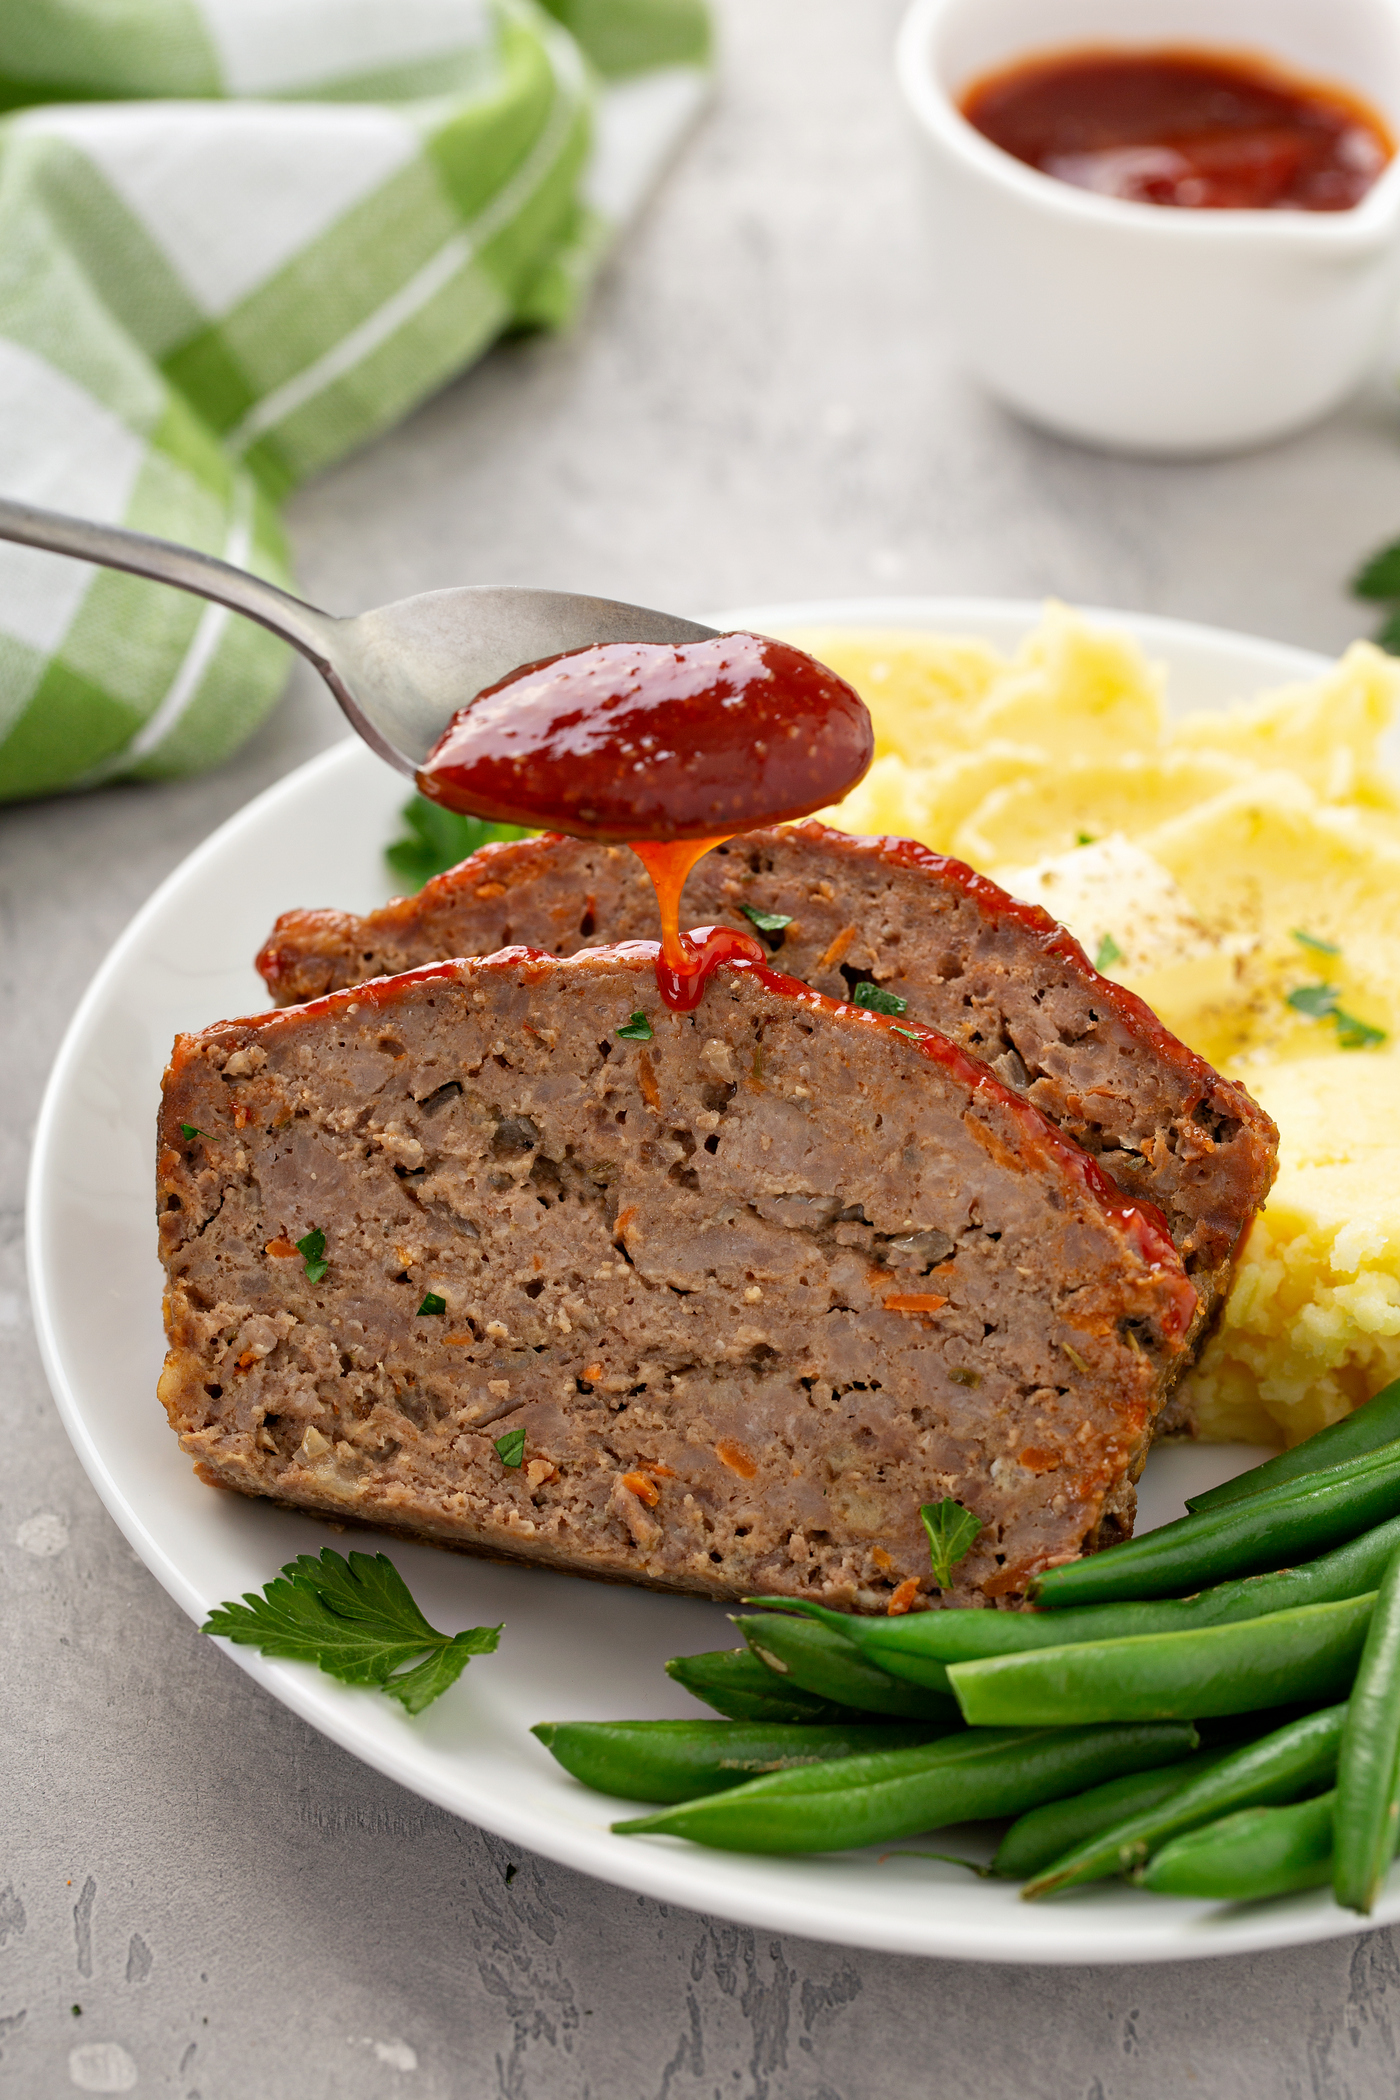 A white dinner plate containing mashed potatoes, green beans, and two slices of meatloaf. A red glaze is being poured from a spoon onto the top of the meatloaf.